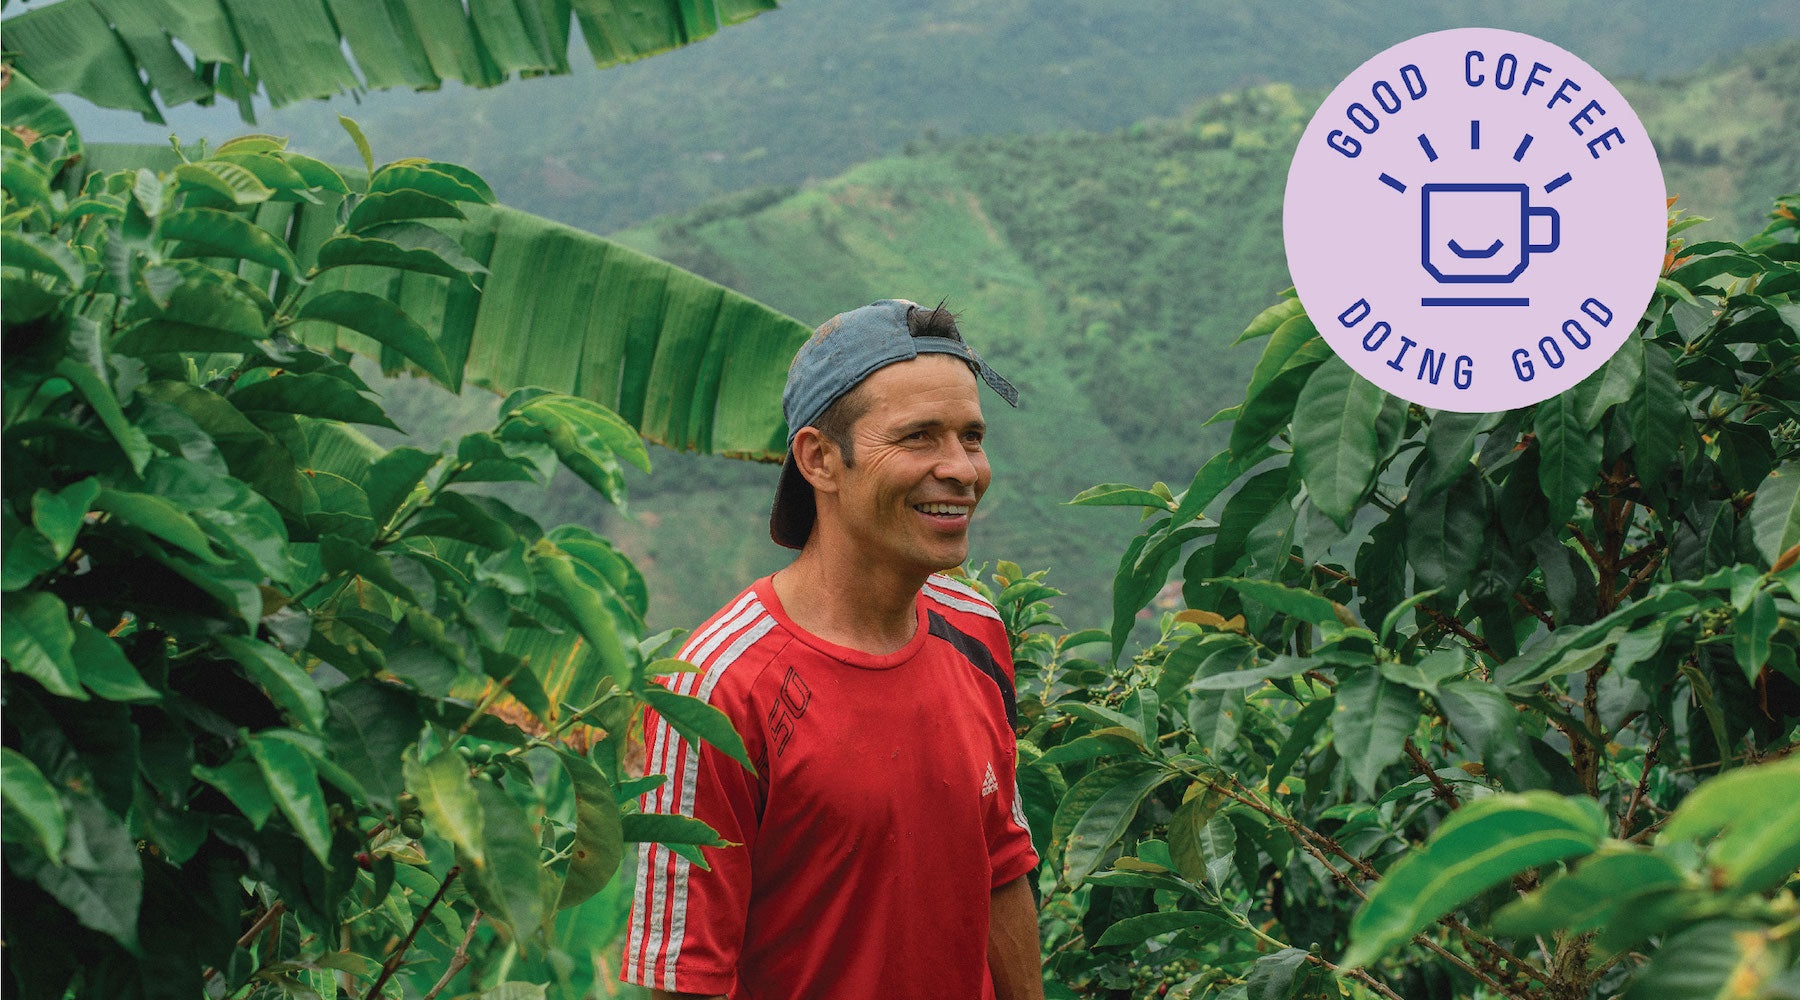 Good Coffee Doing Good in Colombia